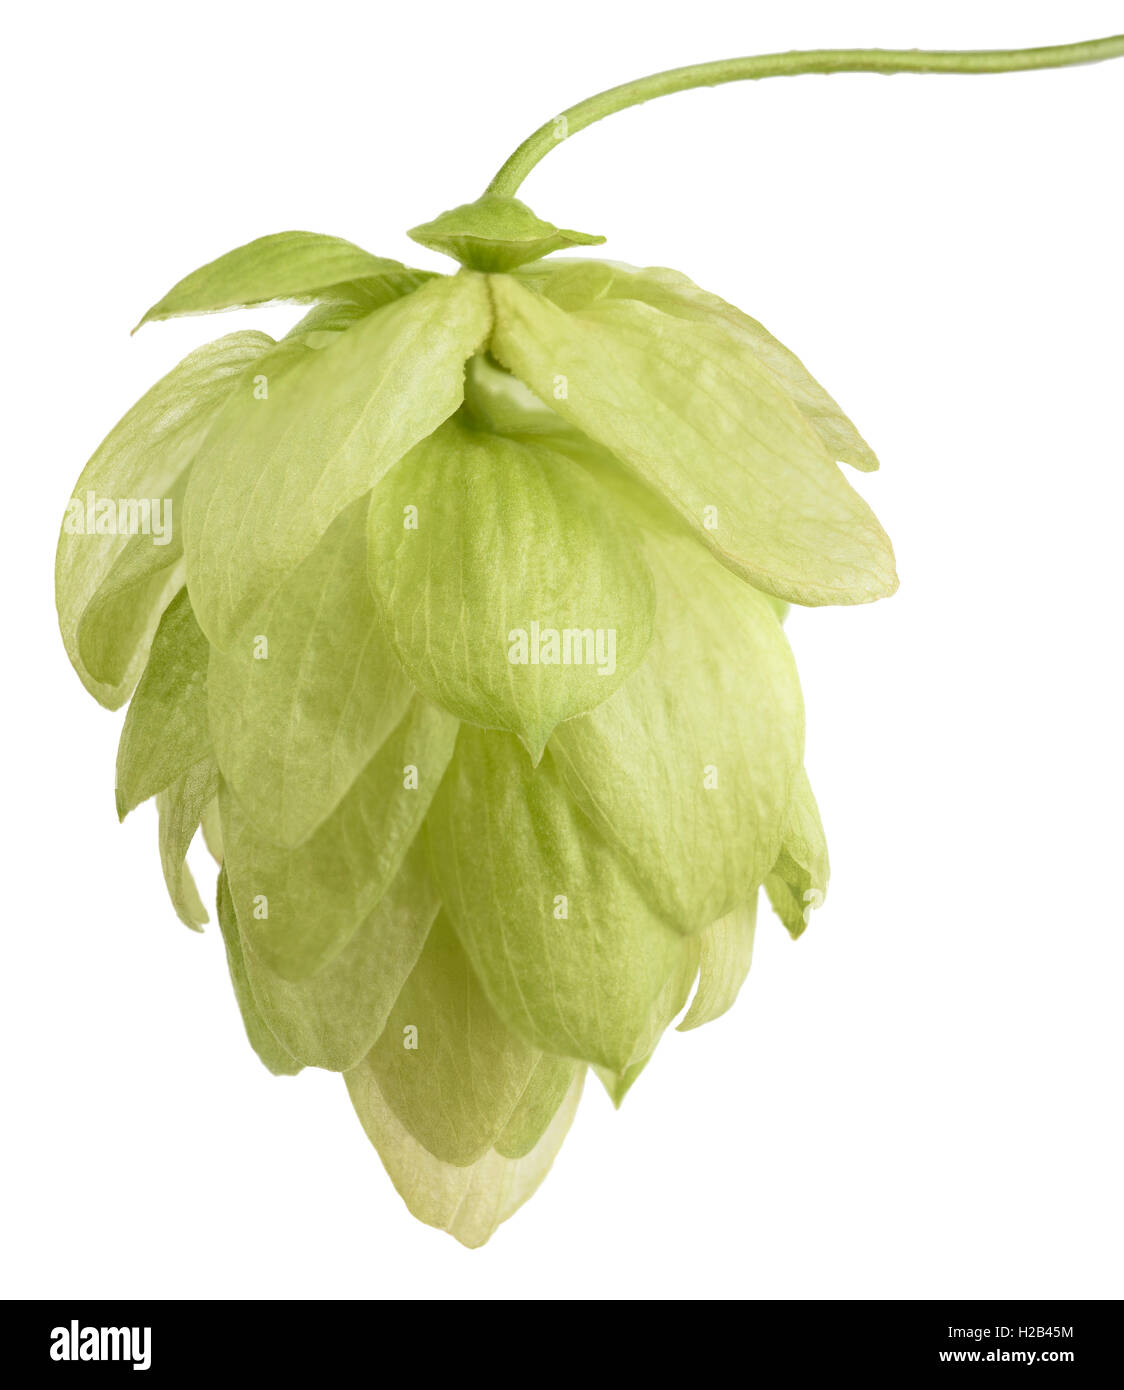 hop cone isolated on white background - Stock Image